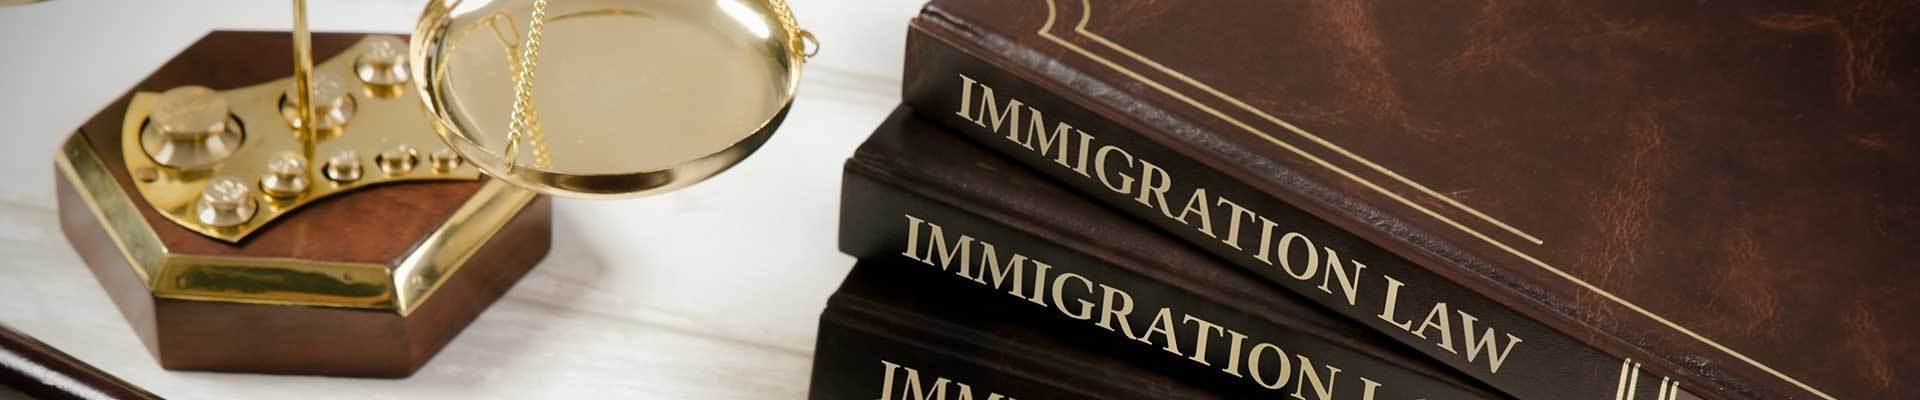 Criminal Solicitors London Area, Personal Injury London Area, Immigration Solicitors London Area